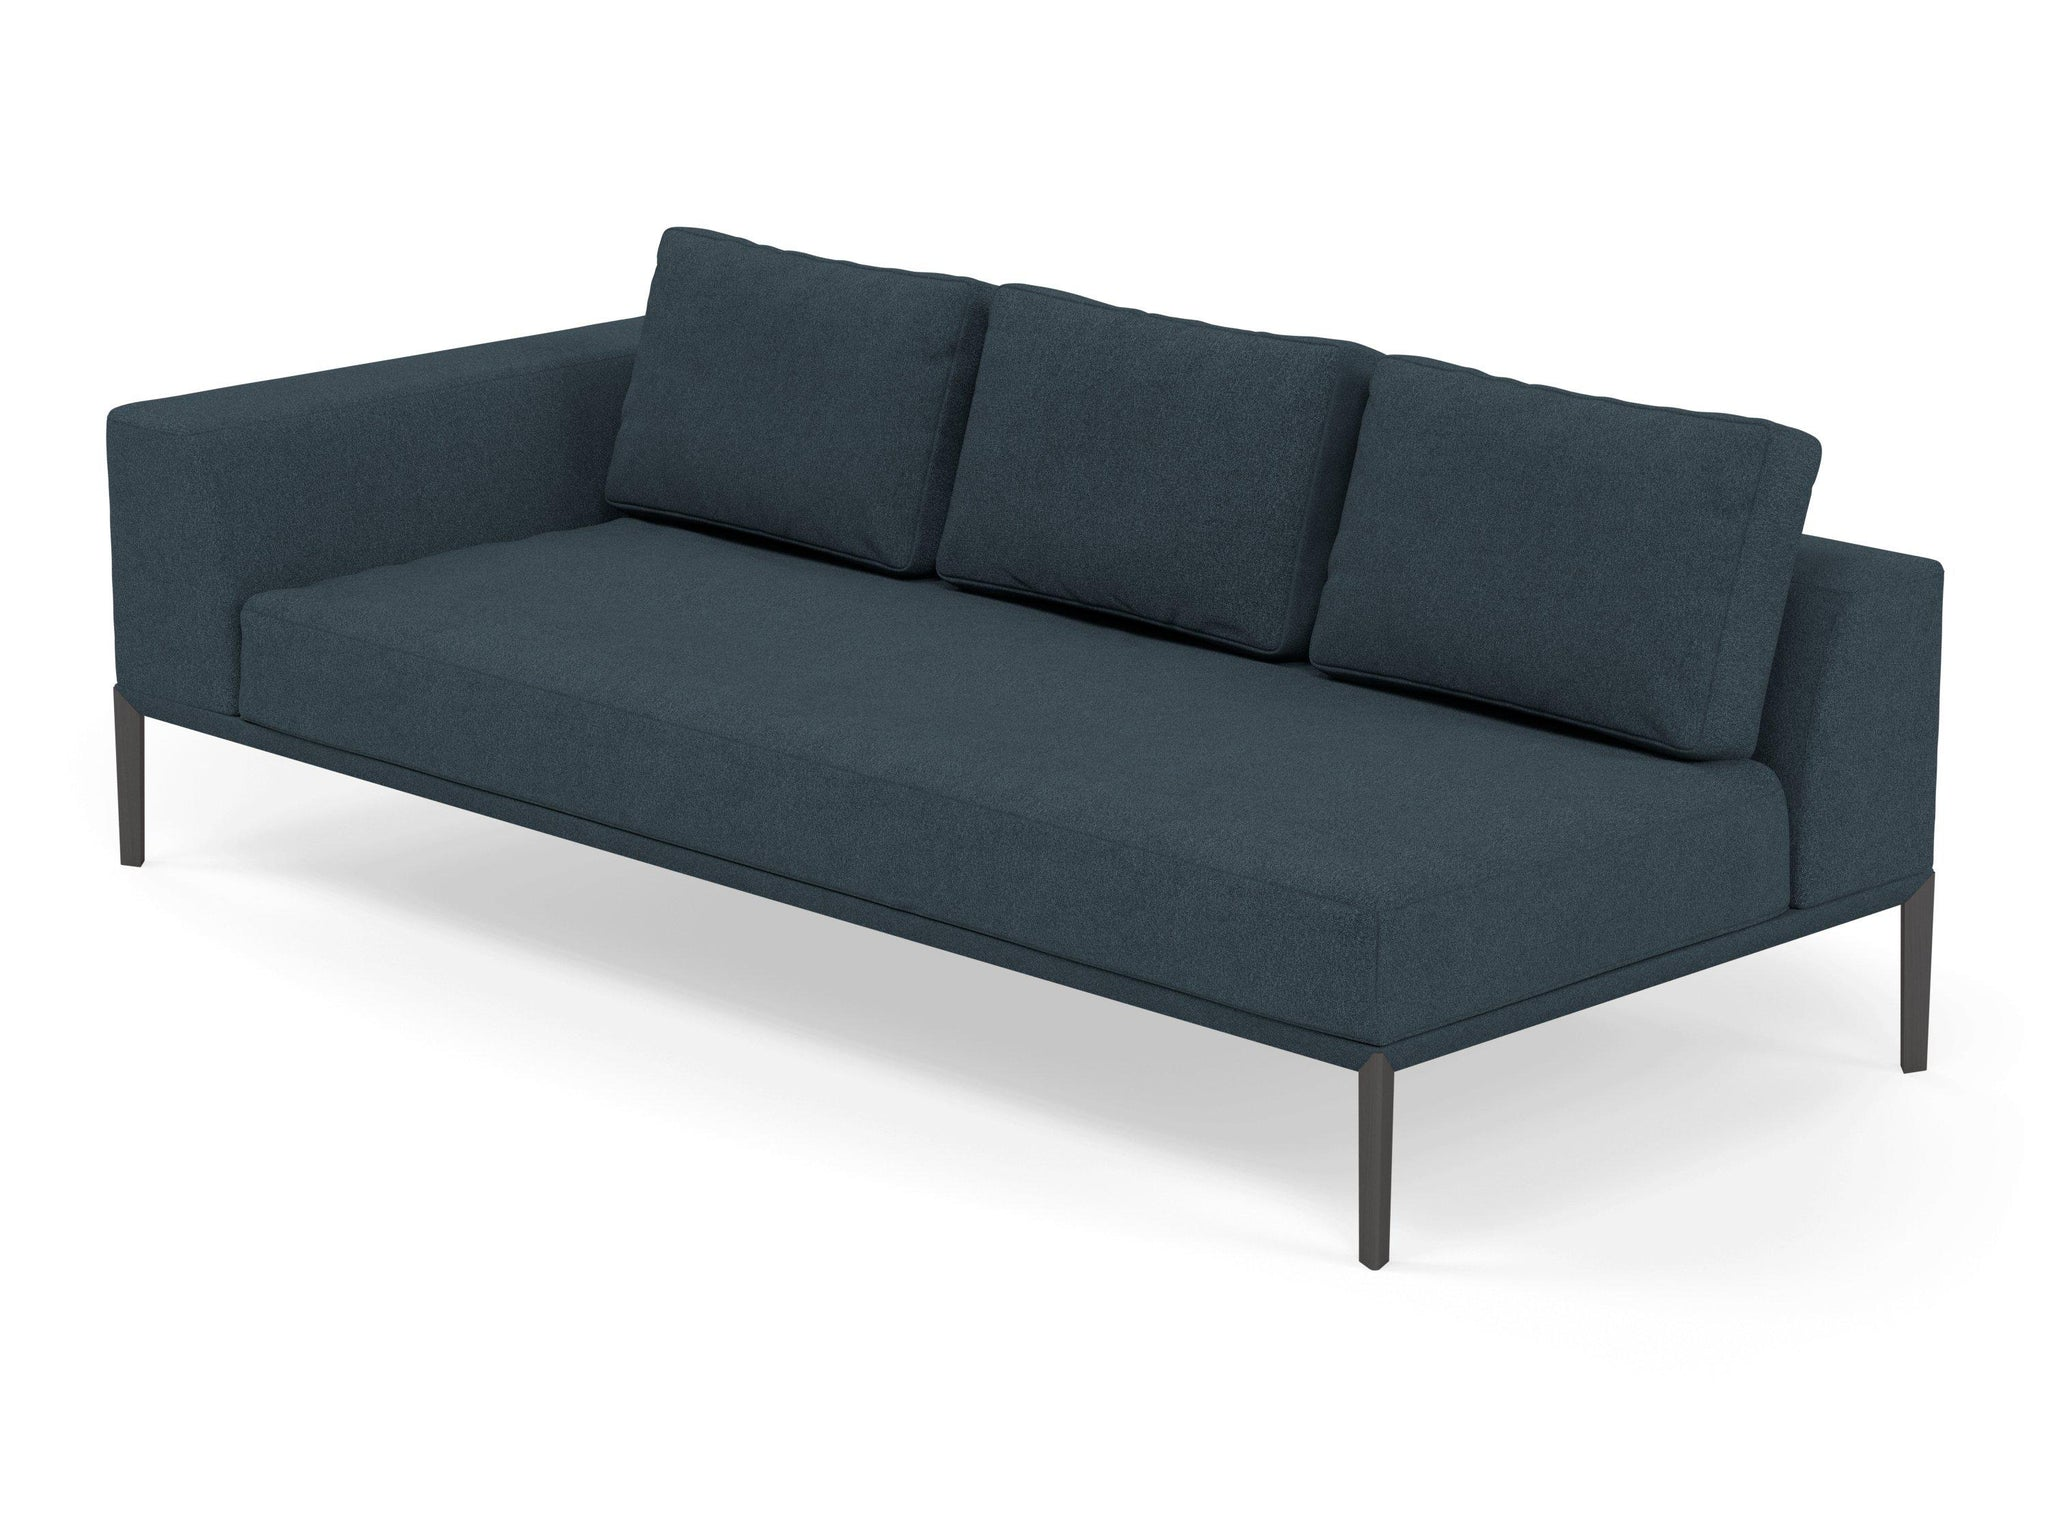 Modern 3 Seater Chaise Lounge Style Sofa With Right Armrest In Denim B Distinct Designs London Ltd